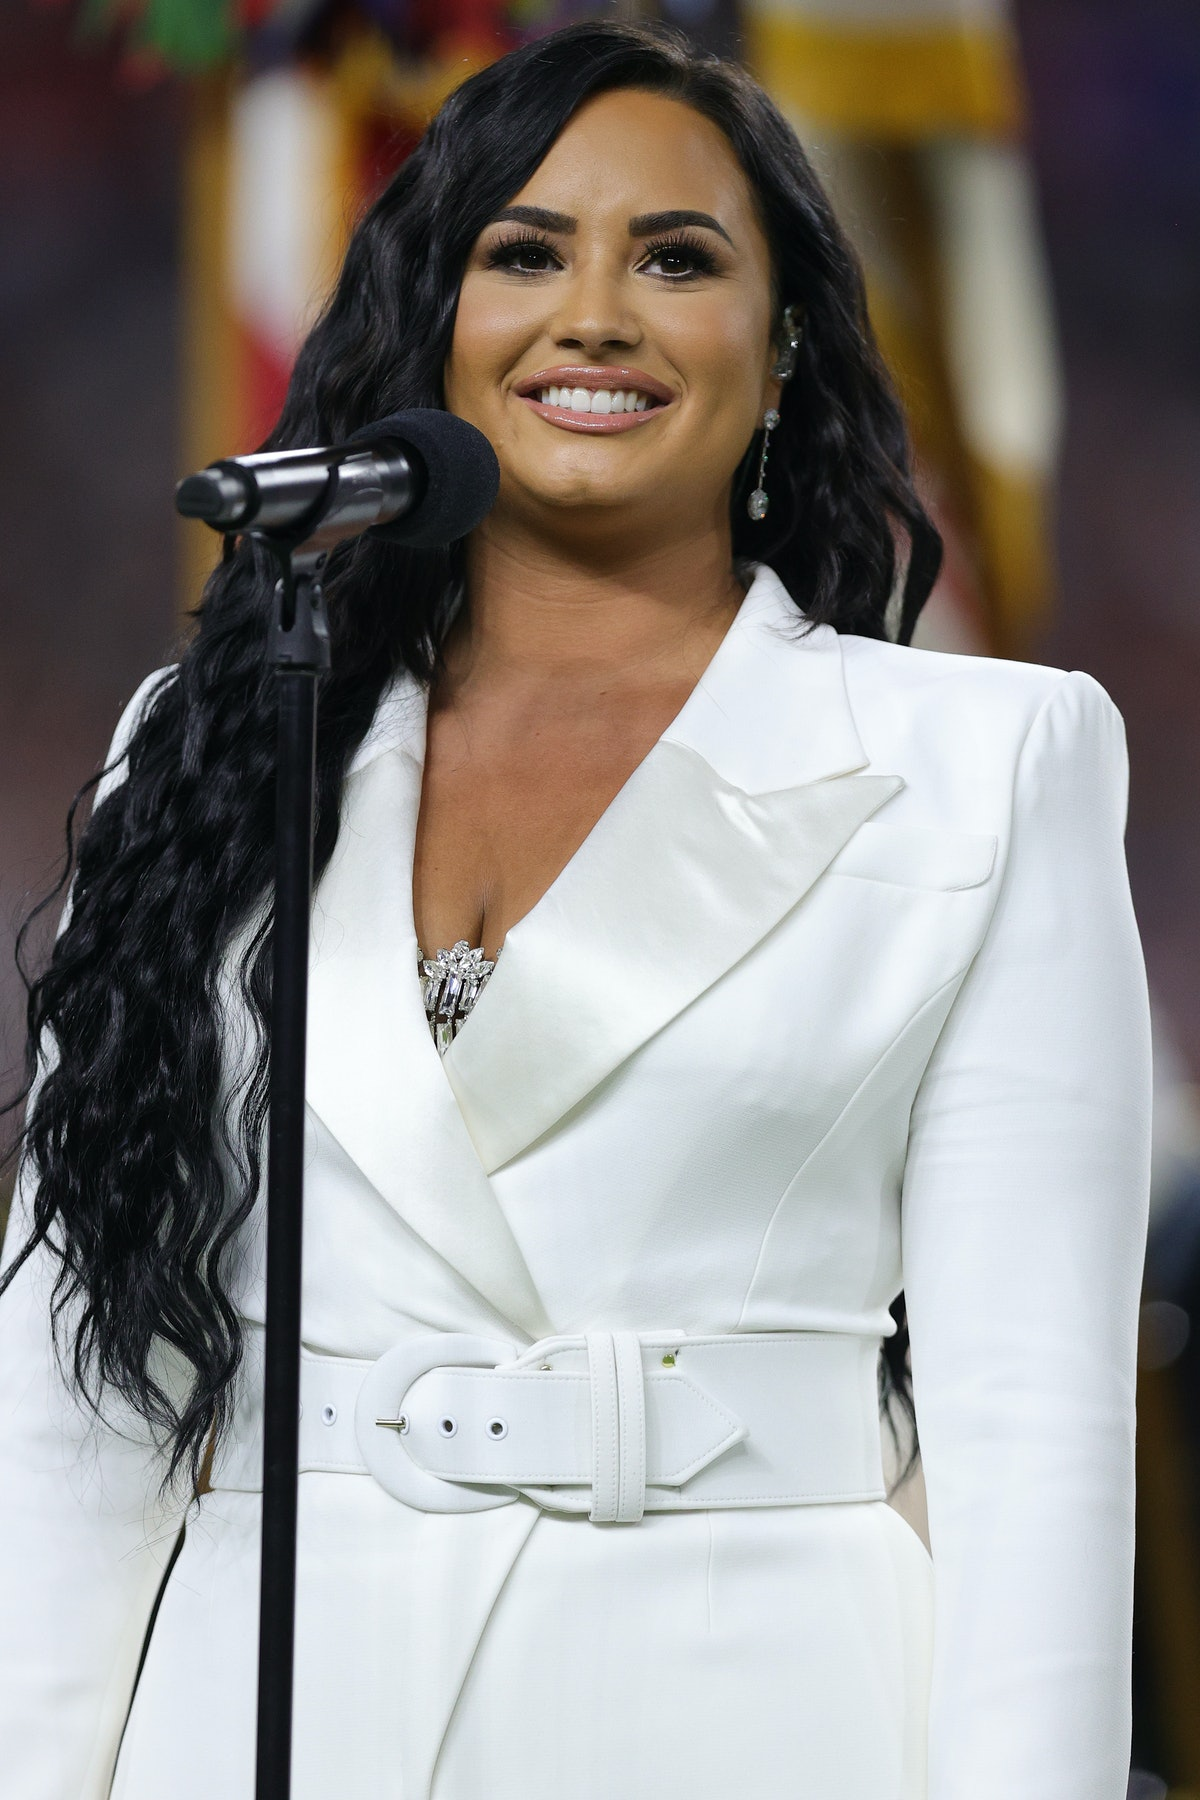 Demi Lovato performs the National Anthem at the Super Bowl.